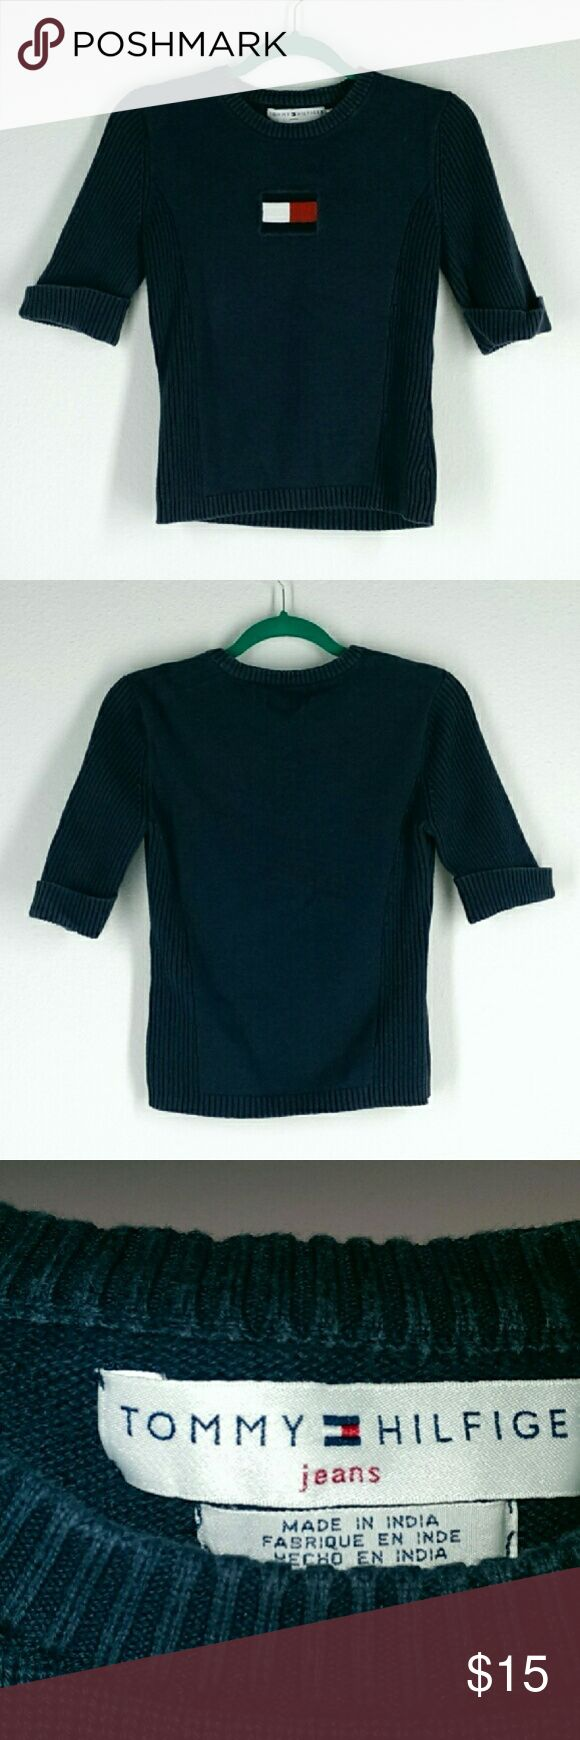 """Ladies Tommy Hilfiger Short Sleeve Sweater top M Short  to mid Sleeve Tommy Hilfiger knit sweater in navy blue with logo design on the front. Sleeves have a half rolled up look. Measurements: Chest - 16"""" Length - 21"""" Sleeve - 11"""" Tommy Hilfiger Tops"""